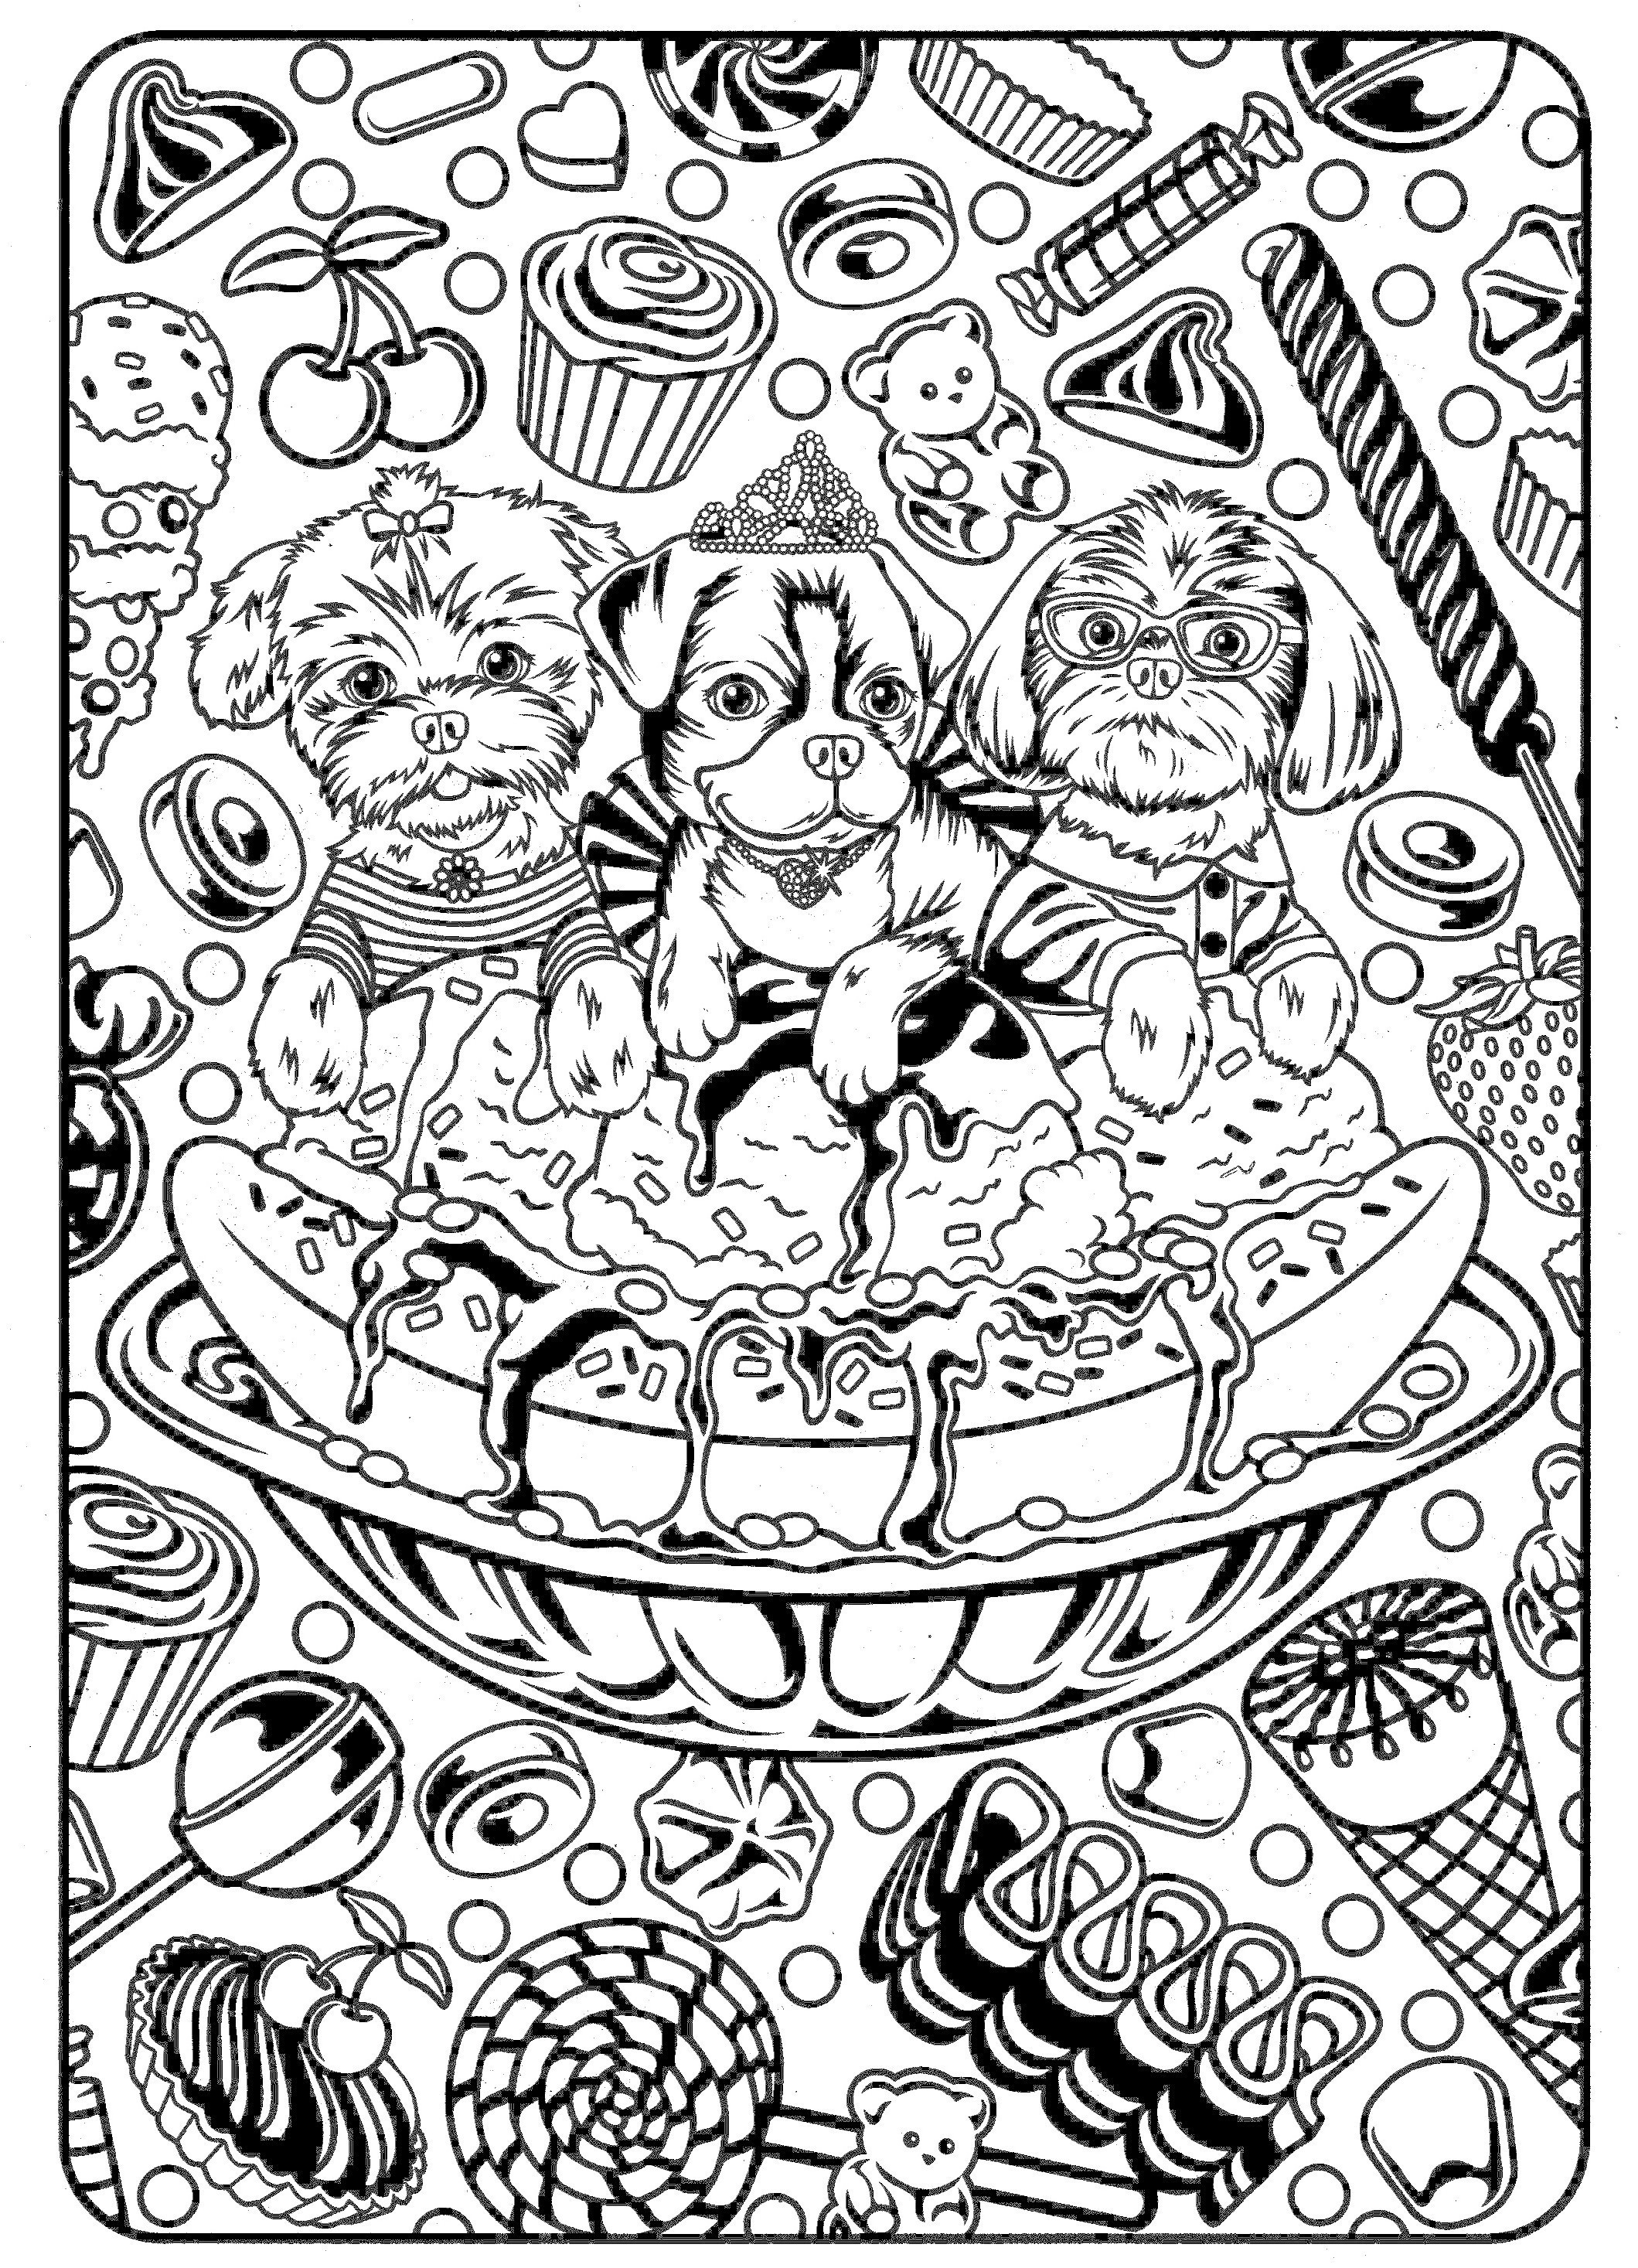 Monkey Coloring Pages Free Printable  Printable 15j - Free For Children